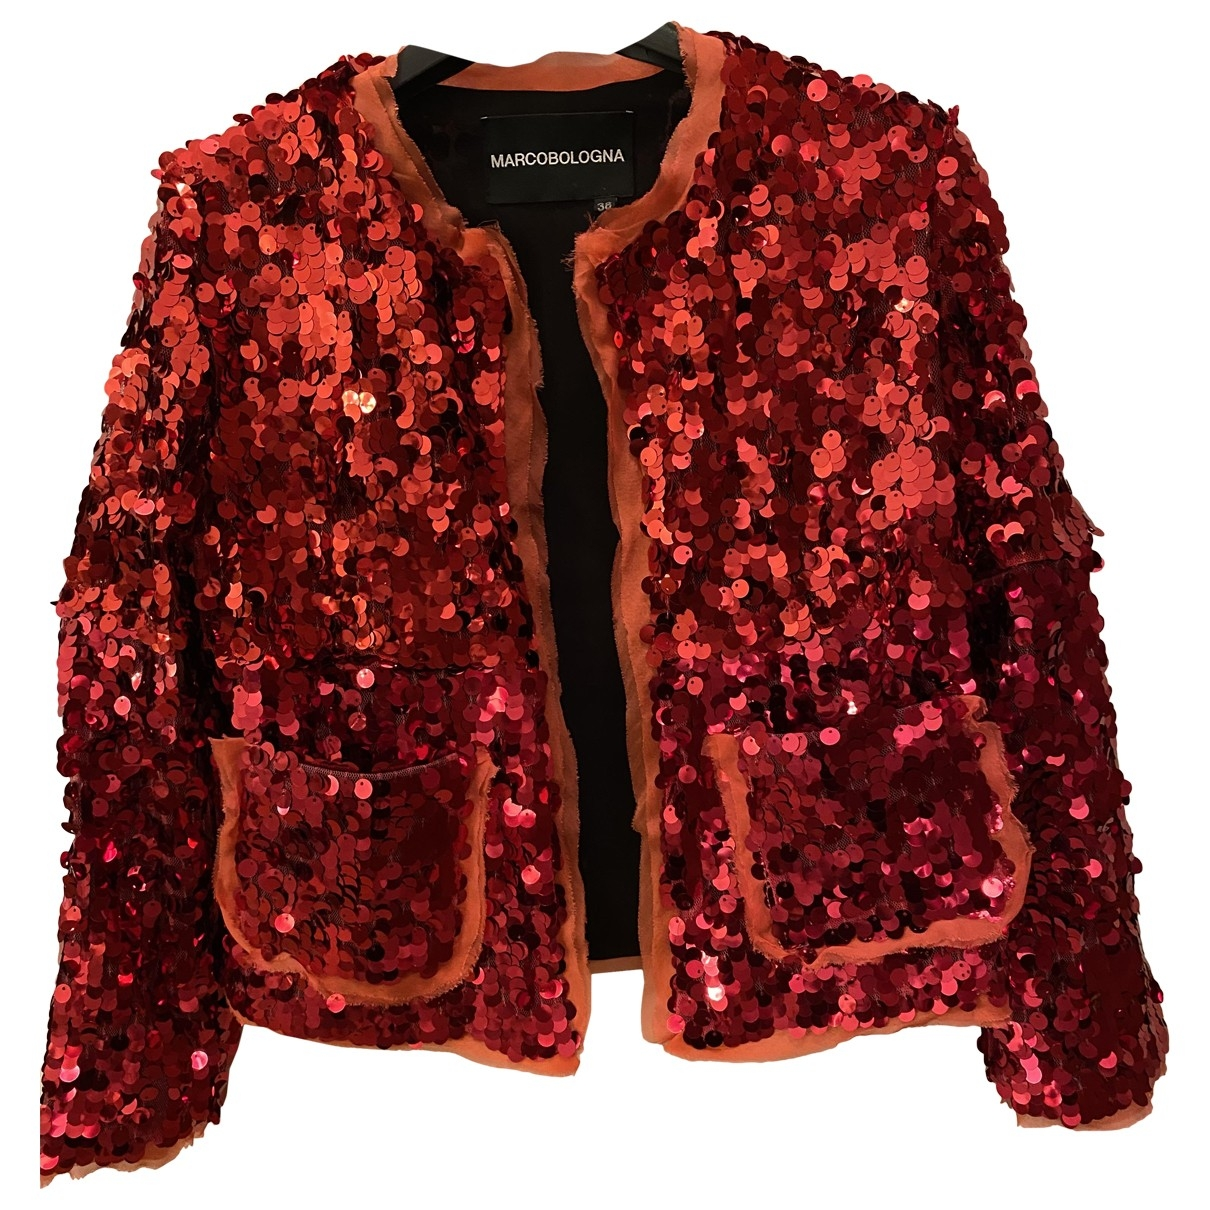 Marco Bologna \N Red jacket for Women 38 IT